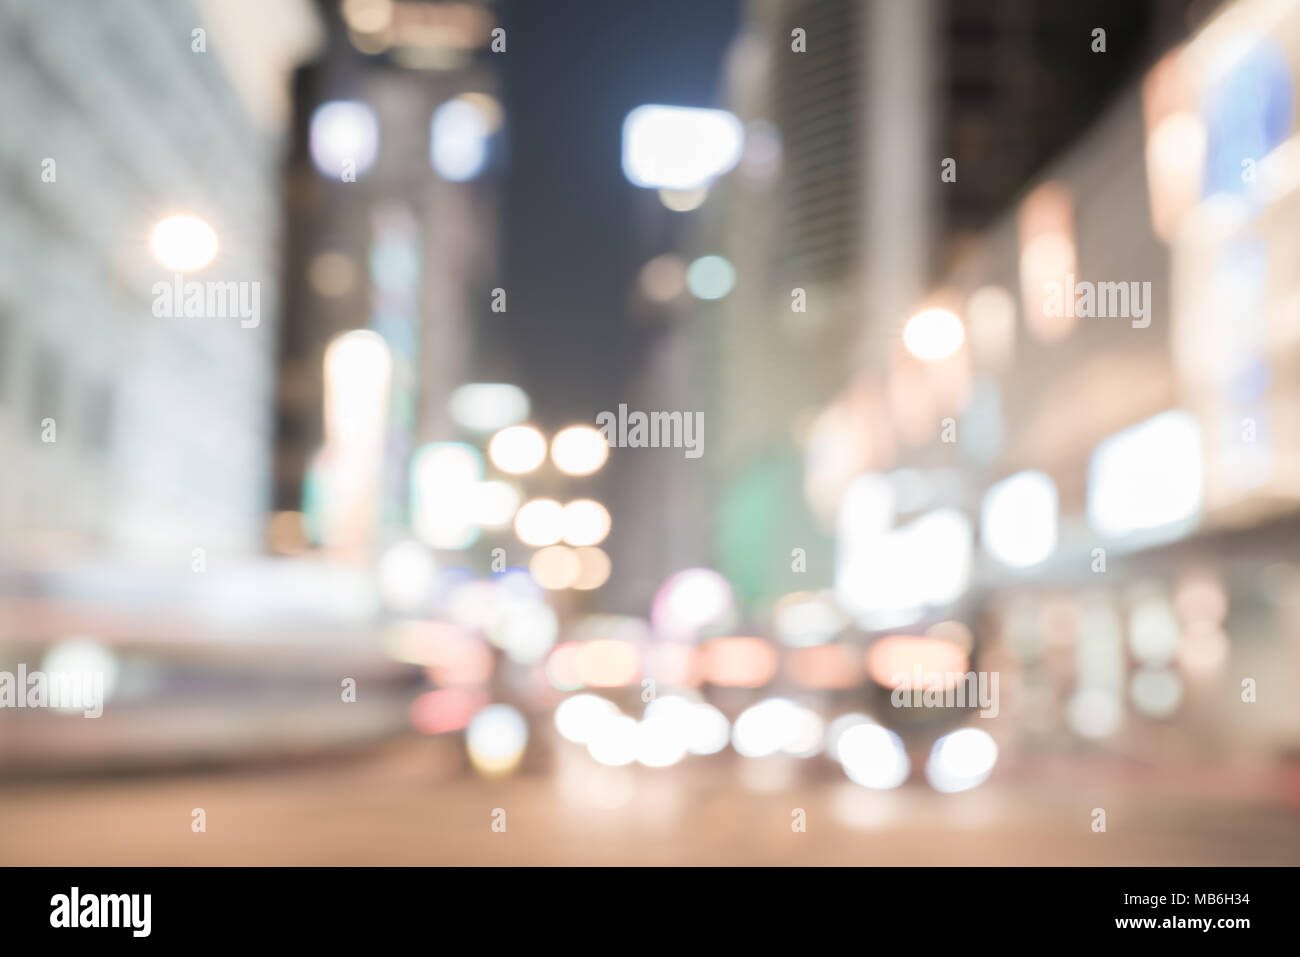 KOWLOON HONG KONG, SEPTEMBER 20, 2017;Night long exposure of passing vehicles on busy city street. Stock Photo